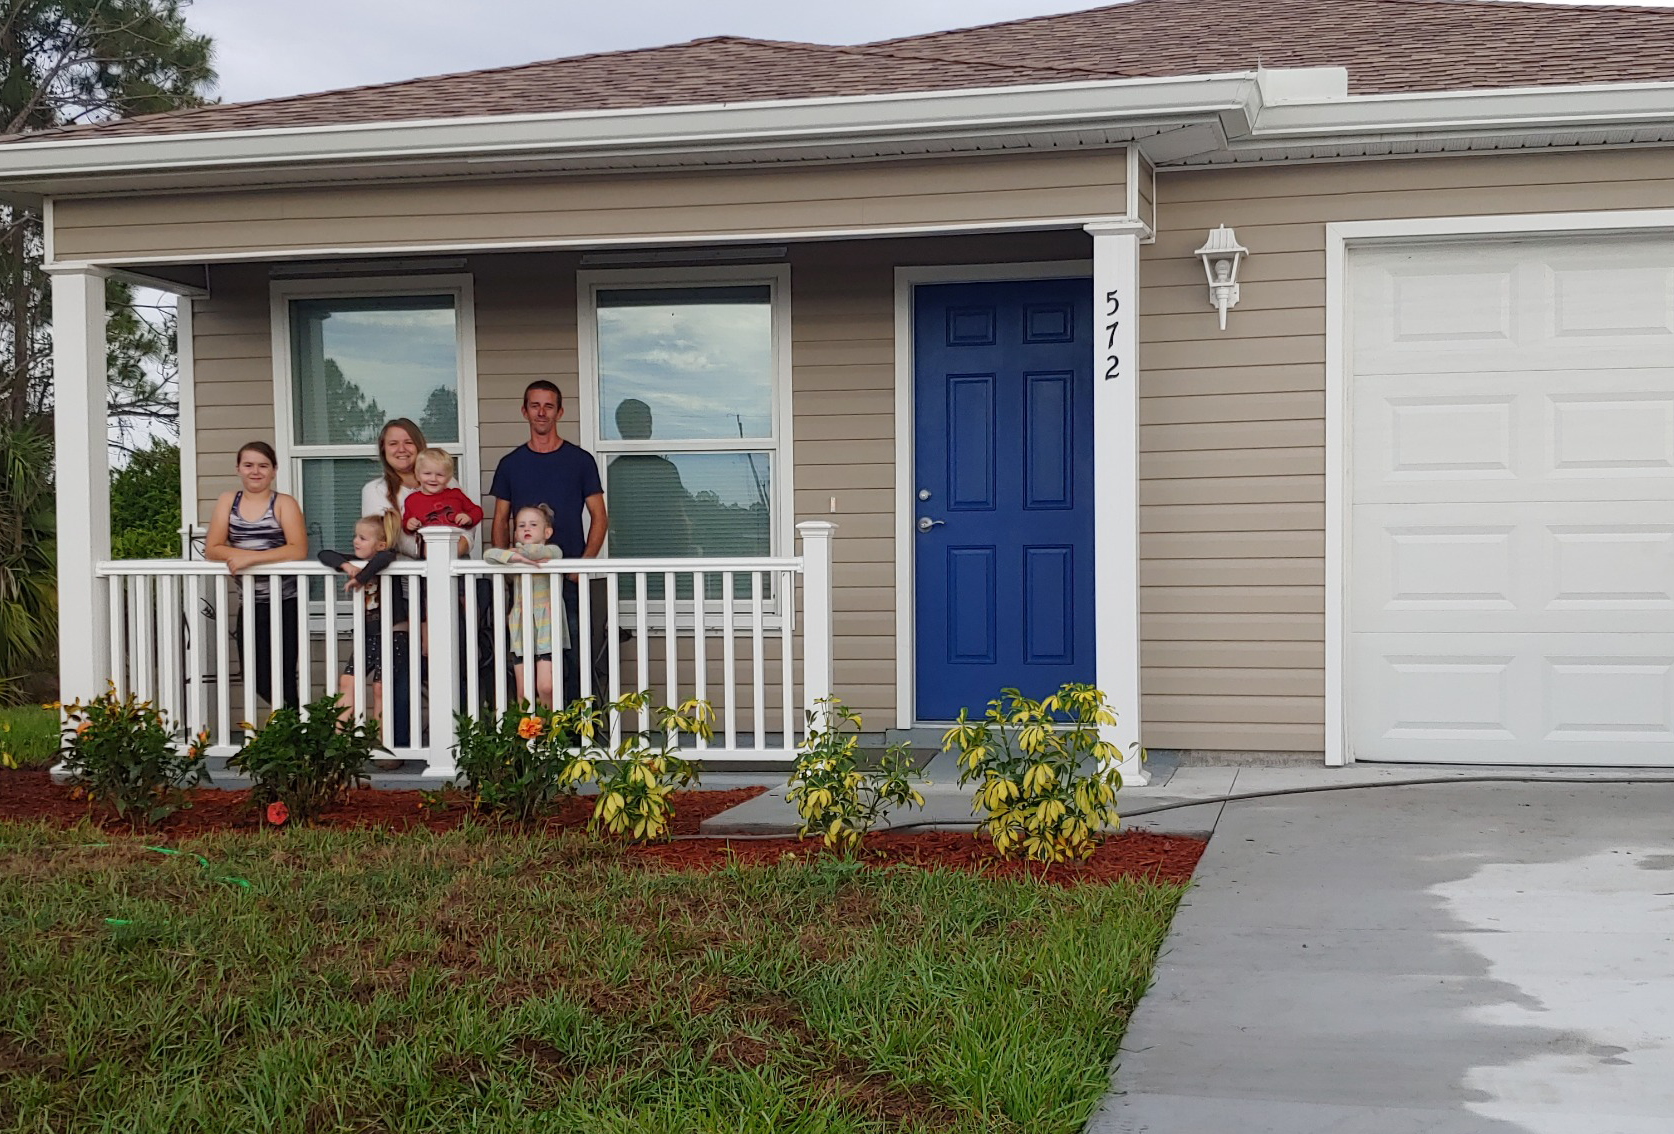 Habitat family on the front porch of their Habitat home, Habitat for humanity of Lee and Hendry Counties